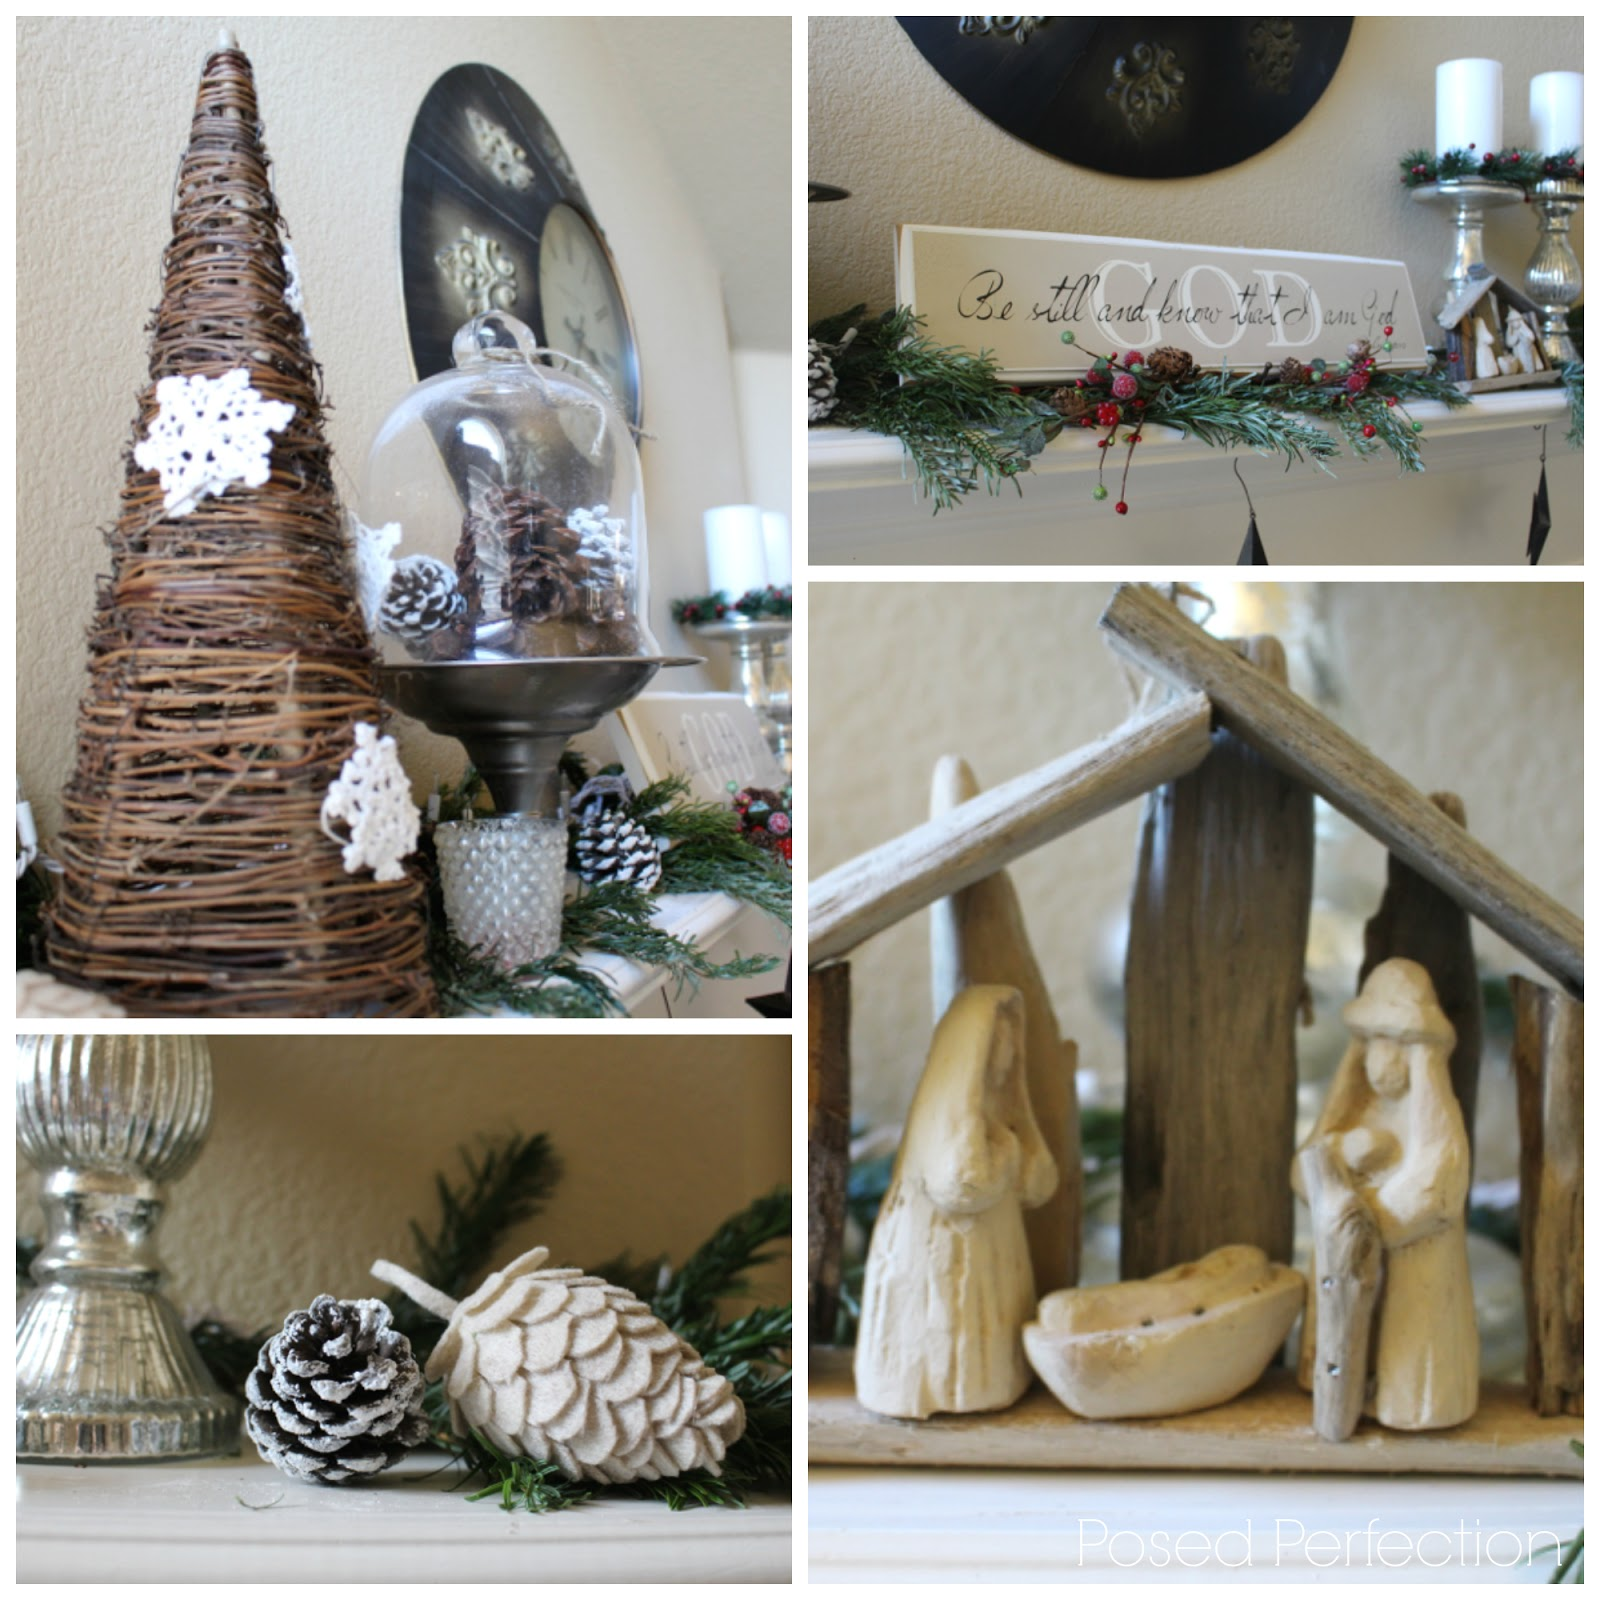 Decking the Halls Holiday Home Tour - Living room Mantel